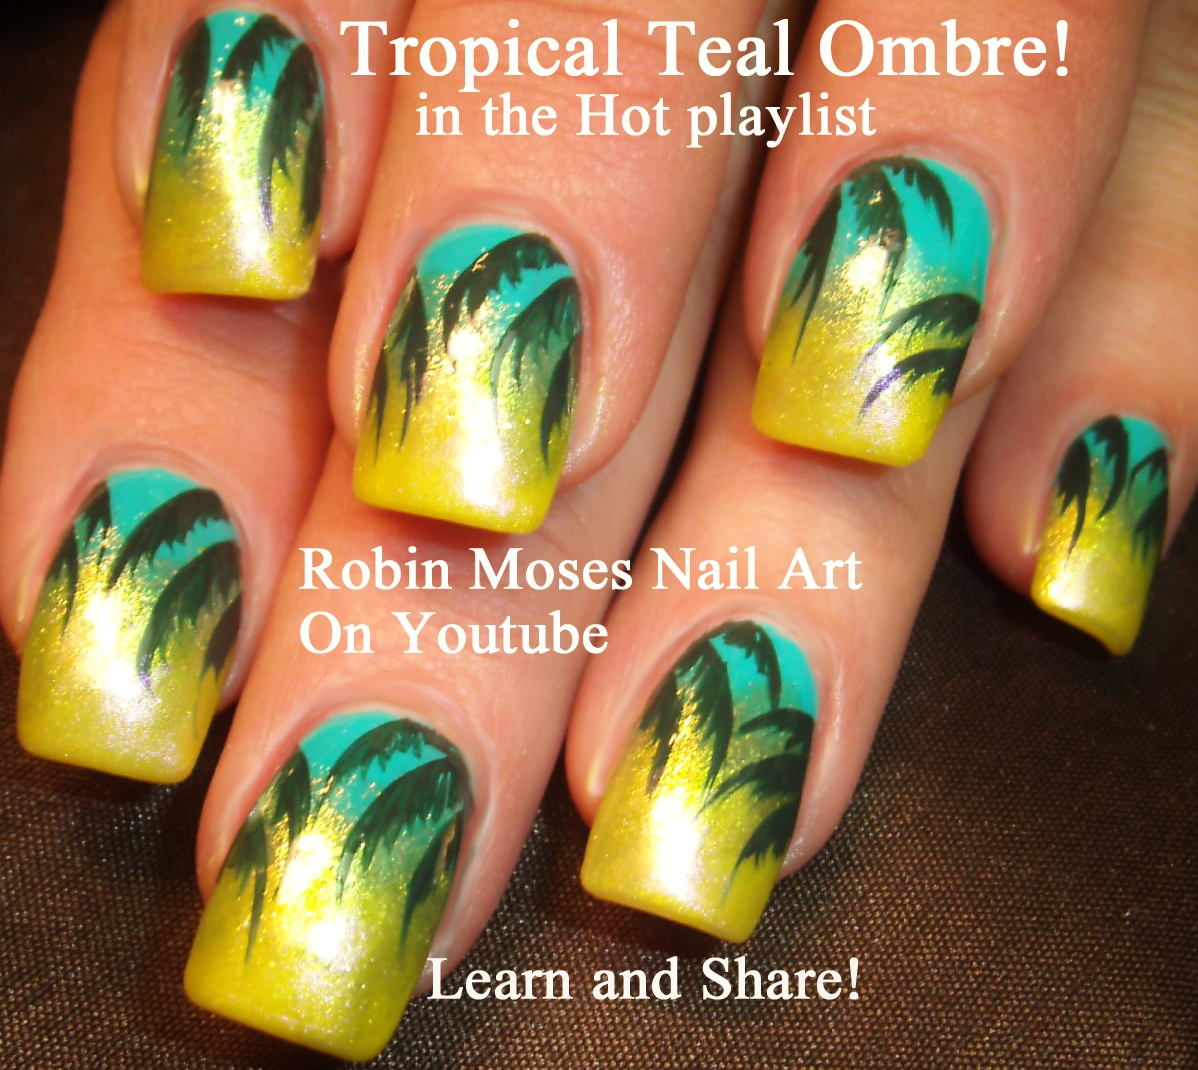 Robin Moses Nail Art February 2015: Robin Moses Nail Art: Tropical & Trendy Teal Nails To Try